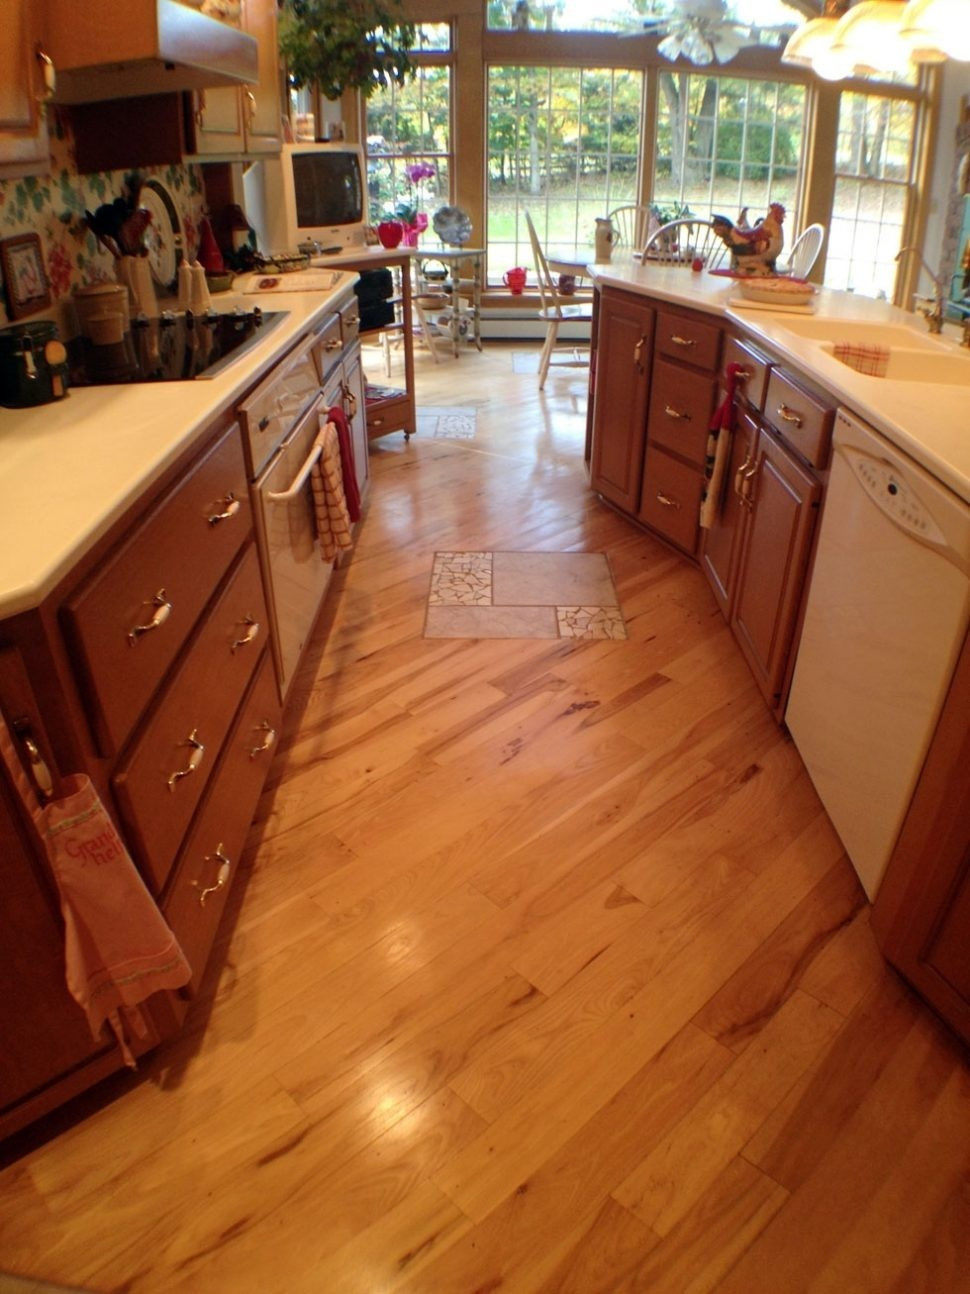 installing engineered hardwood flooring over vinyl of 17 new cost of hardwood floor installation pics dizpos com for 16 lovely s hardwood floor installation cost